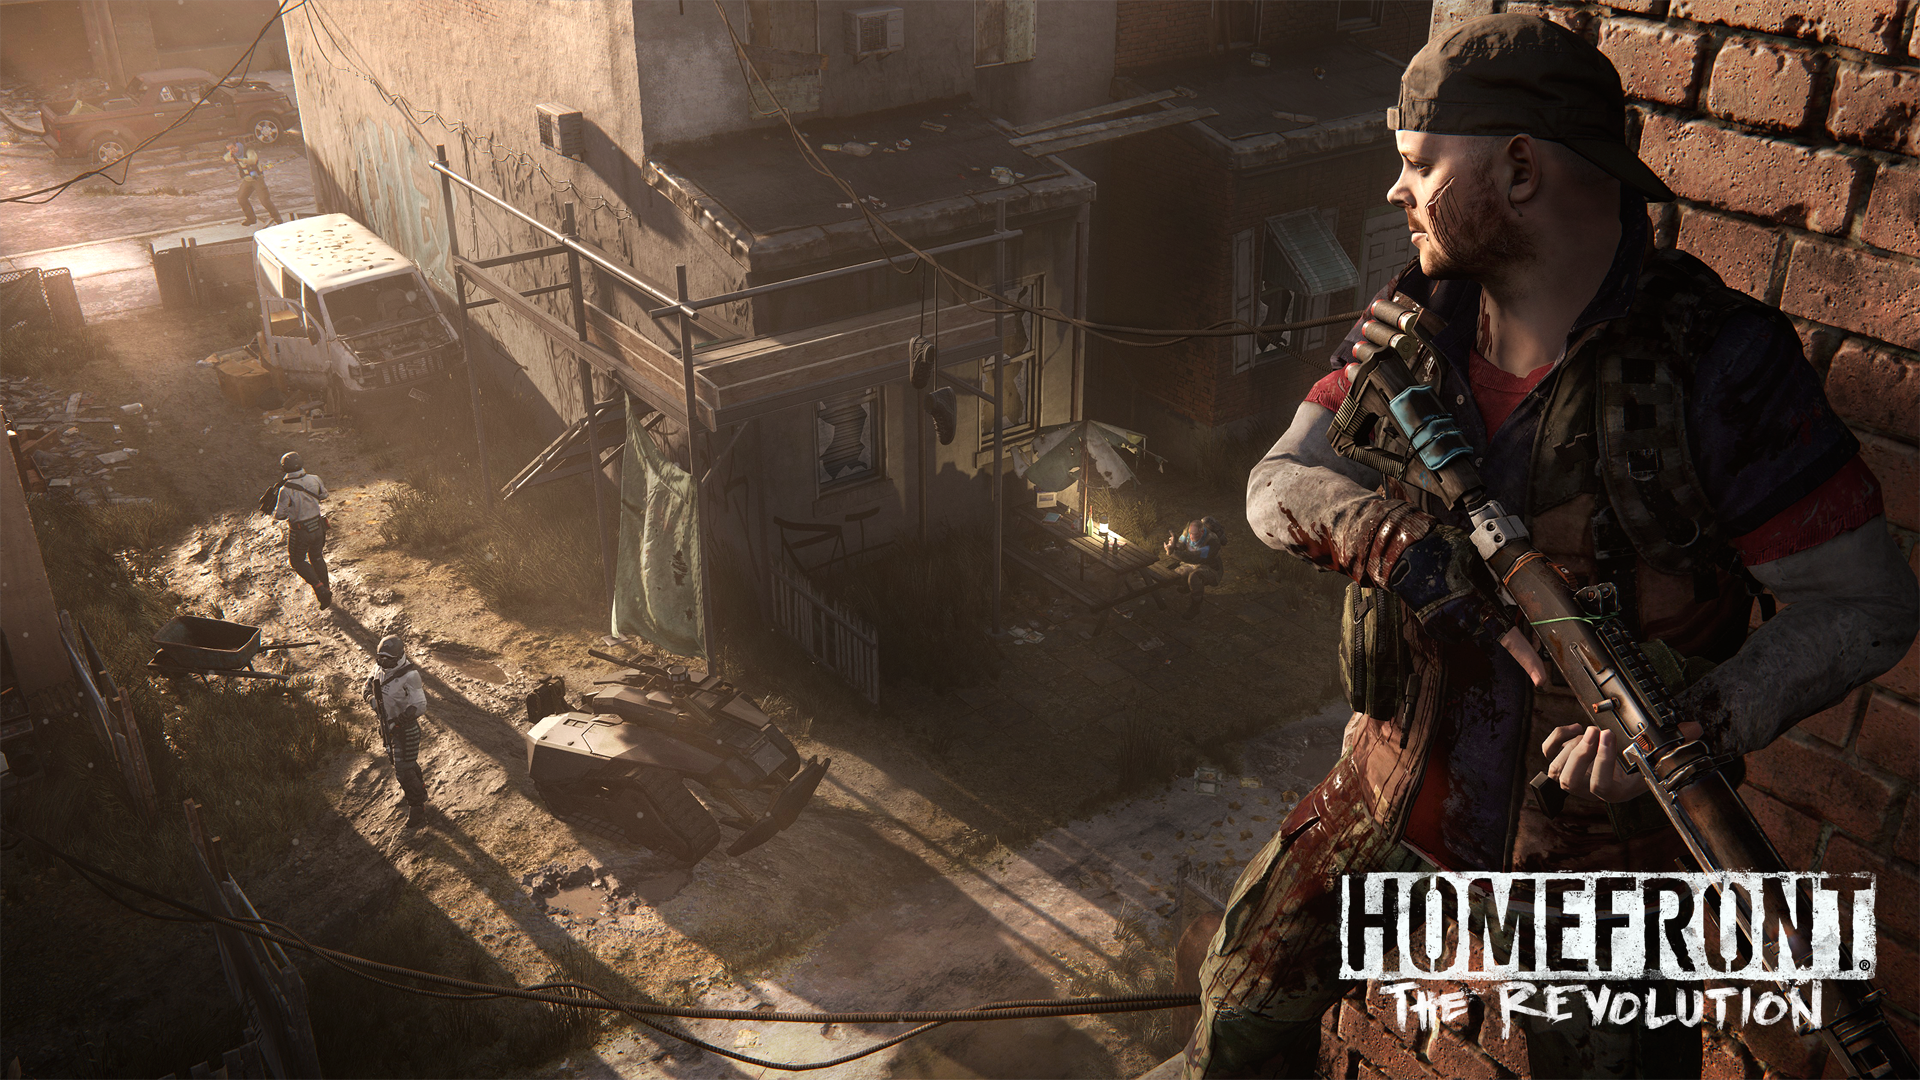 Homefront: The Revolution Ignites America - HD Wallpapers - American Revolution PNG HD